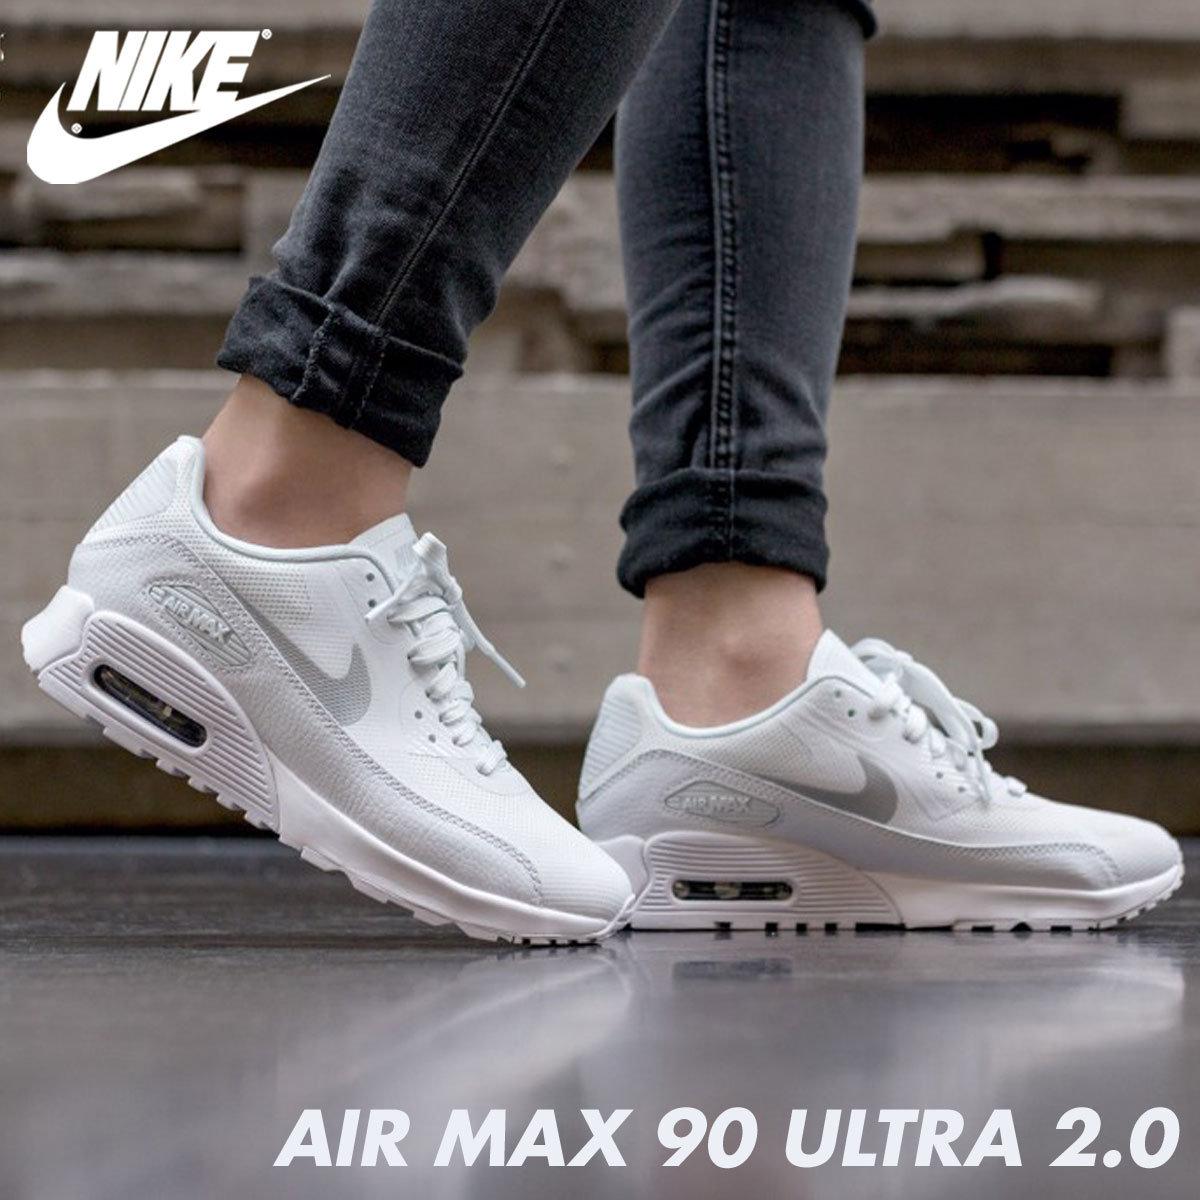 sports shoes e7d60 53468 Nike NIKE Air Max 90 ultra Lady's sneakers WMNS AIR MAX 90 ULTRA 2.0  881,106-101 shoes white [8/9 Shinnyu load]